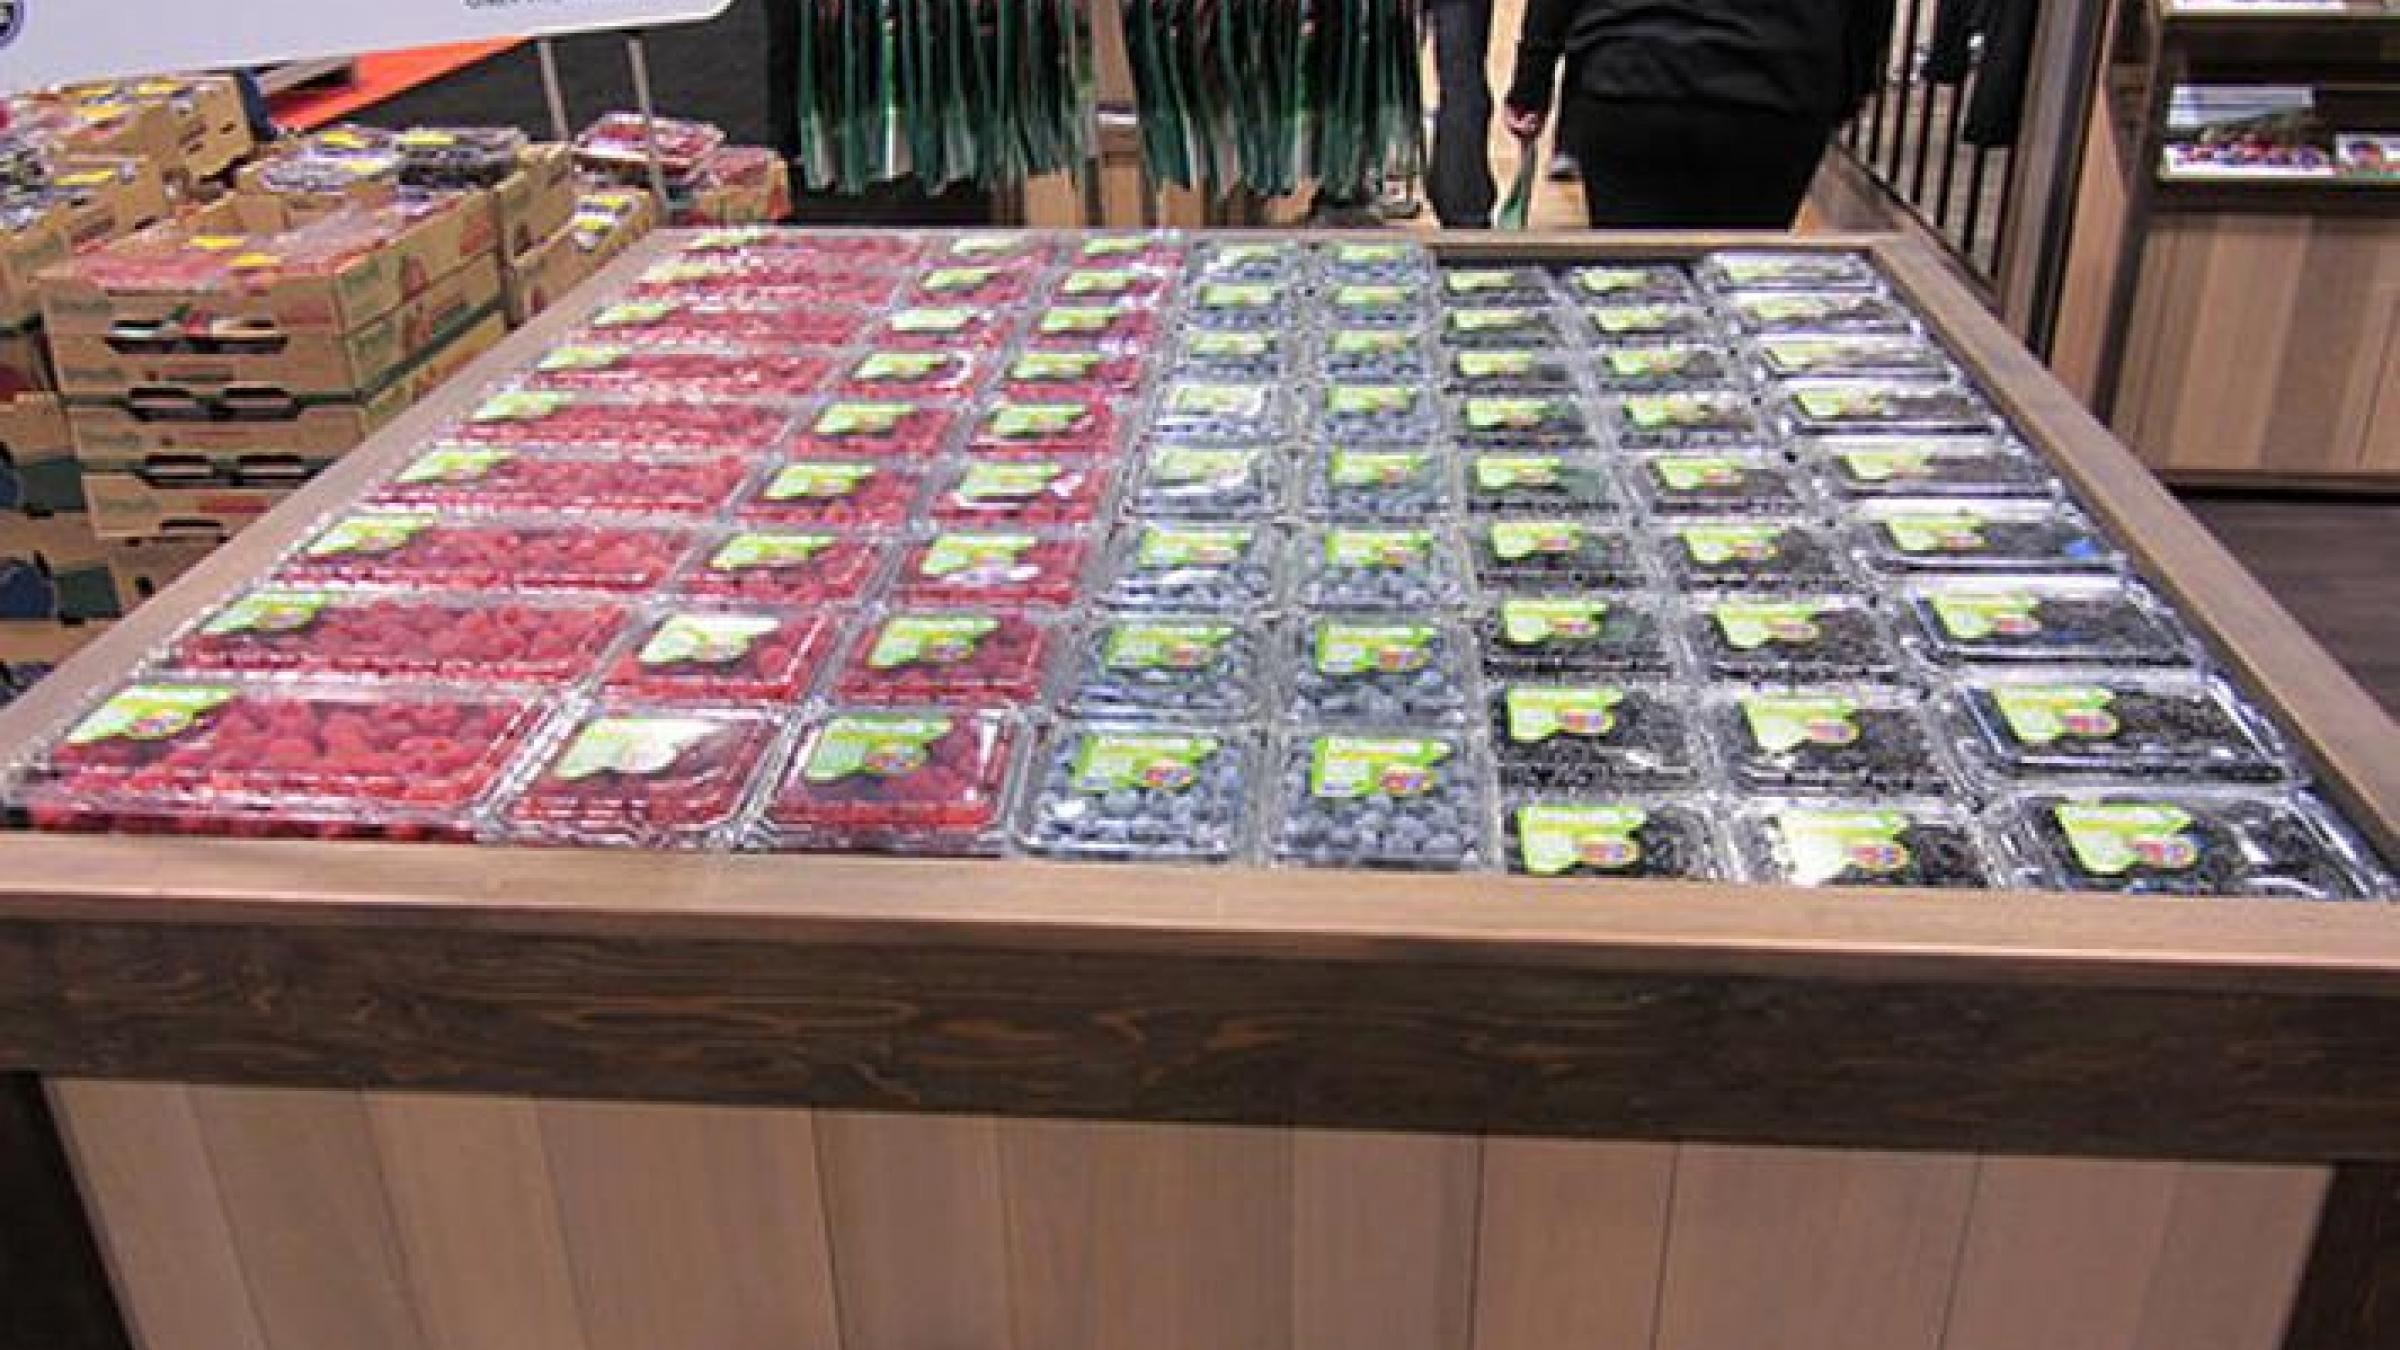 Driscoll's berries being sold in a store (Photograph courtesy of Driscoll's. Copyright 2014. All rights reserved.)